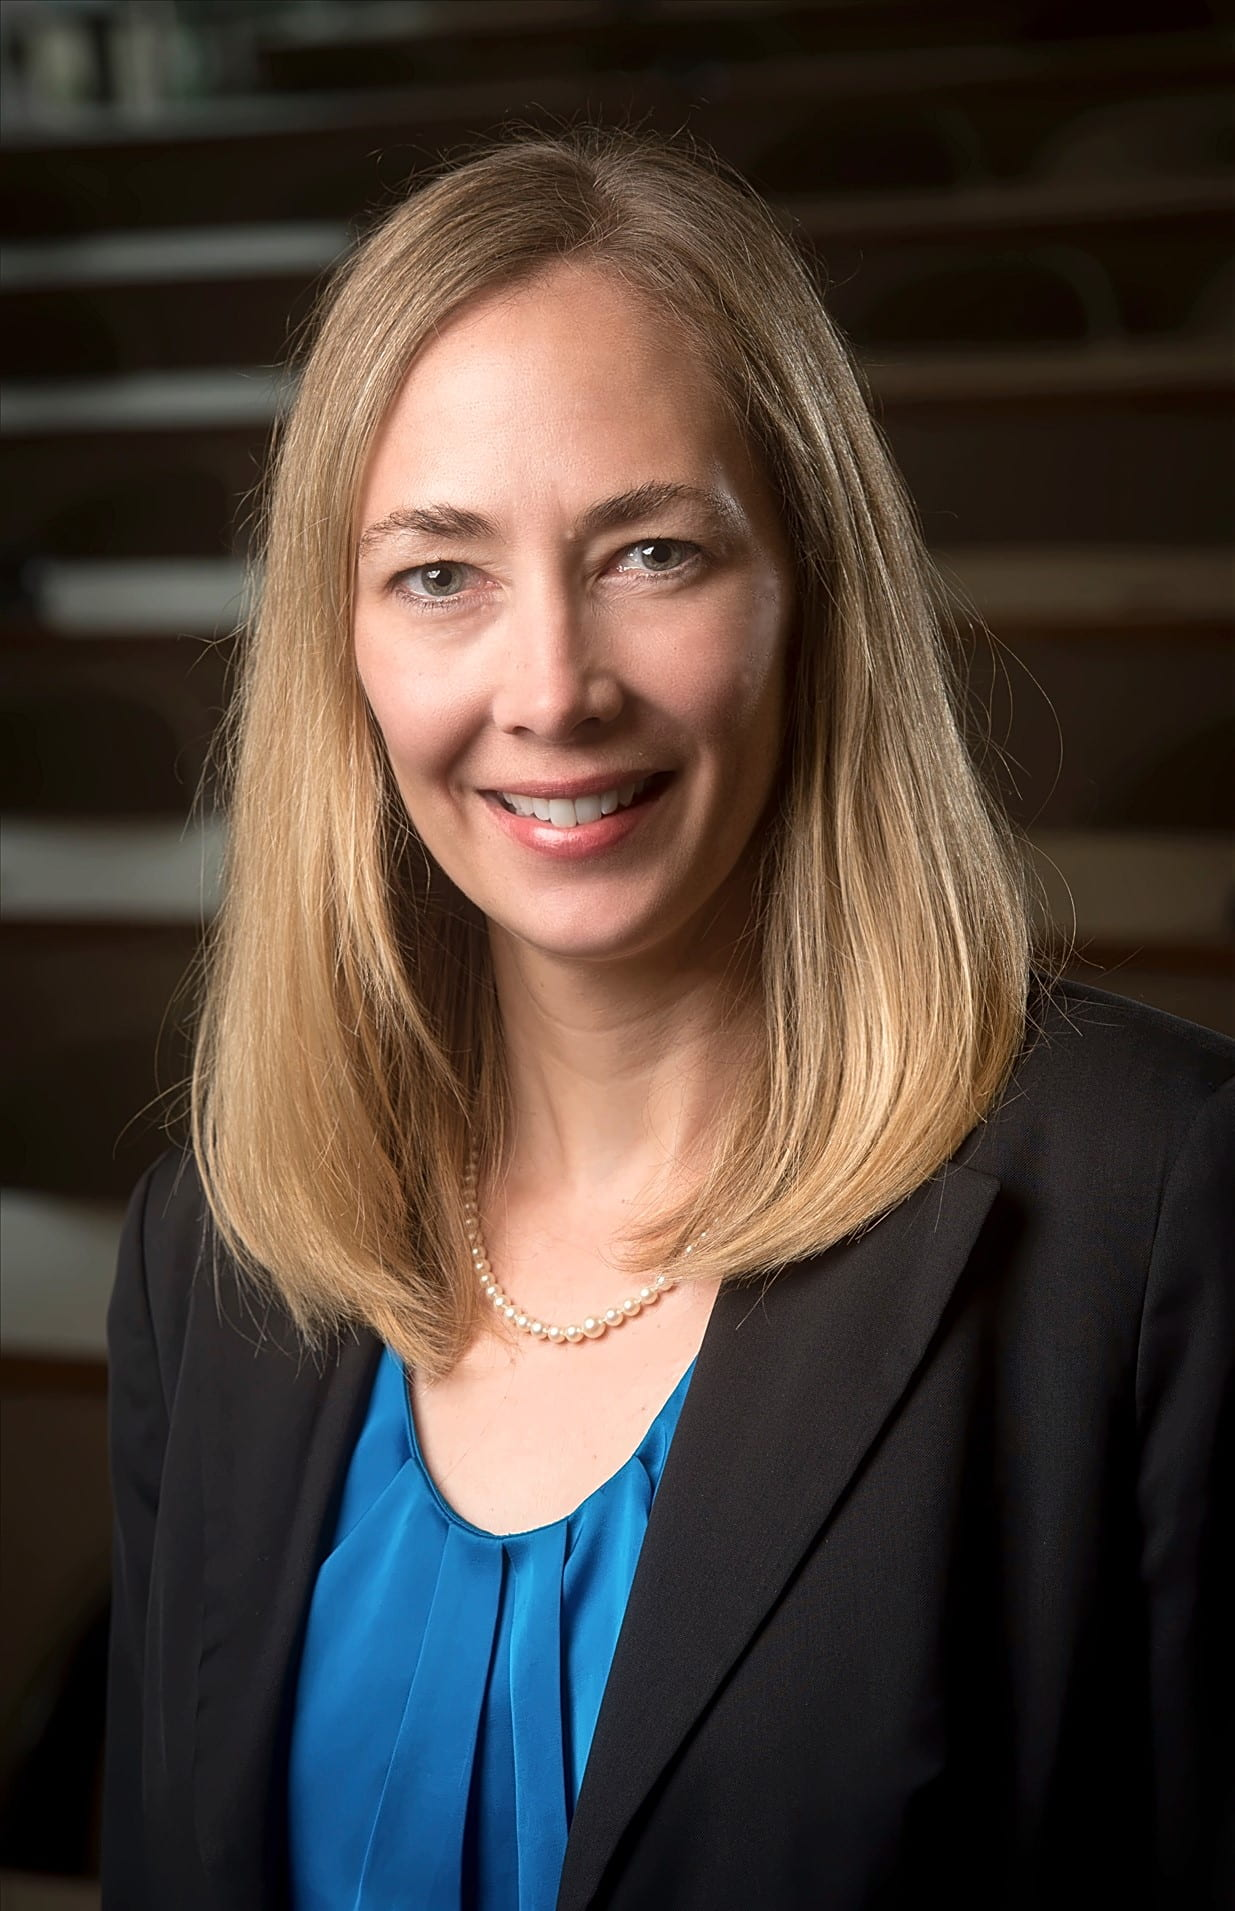 Head shot of Dr. Tina Kempin Reuter, PhD (Director, Institute for Human Rights), 2016.